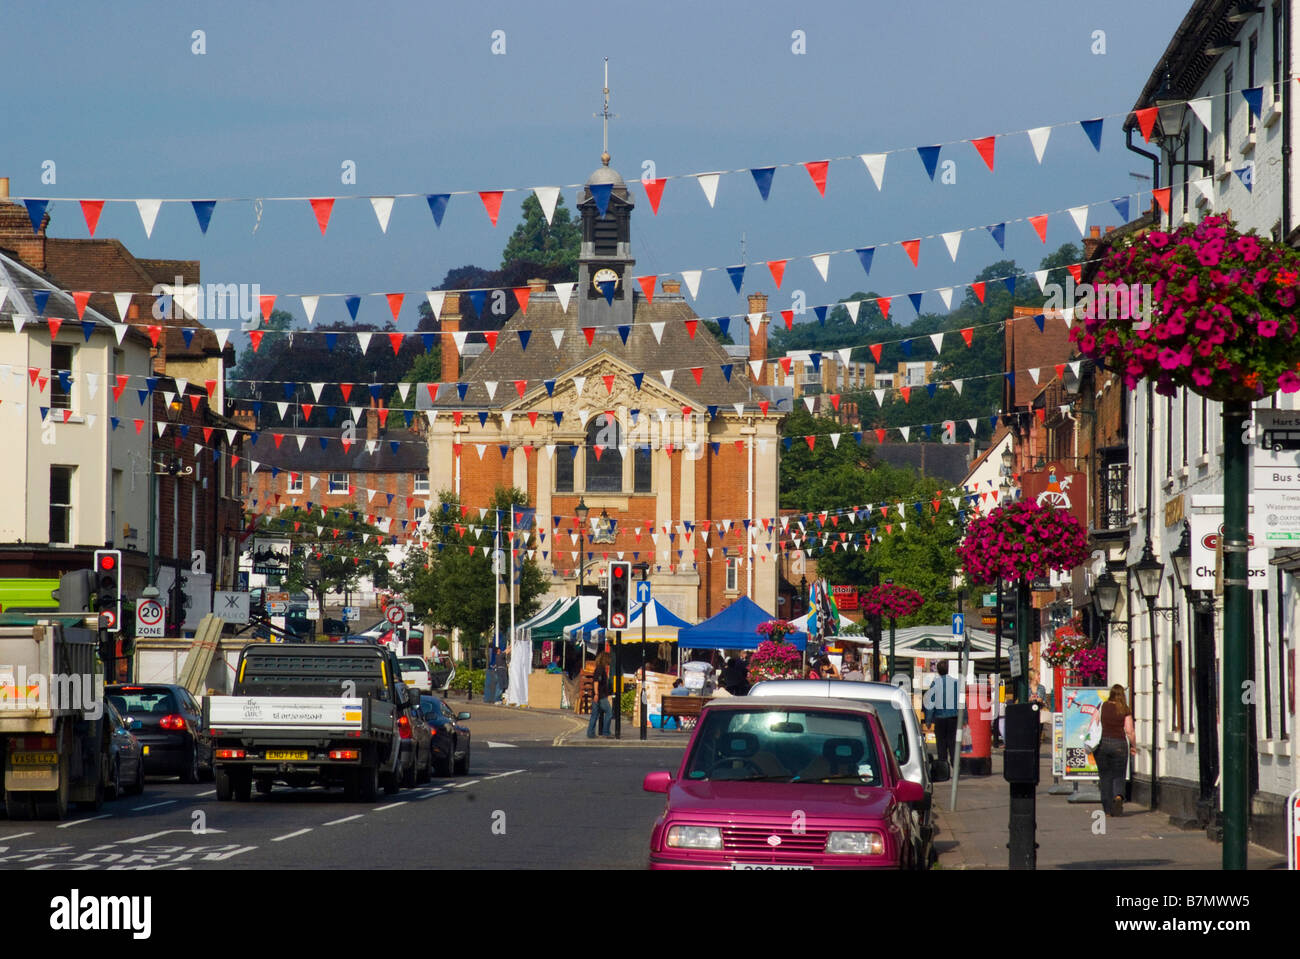 Town Hall, Henley on Thames - Stock Image